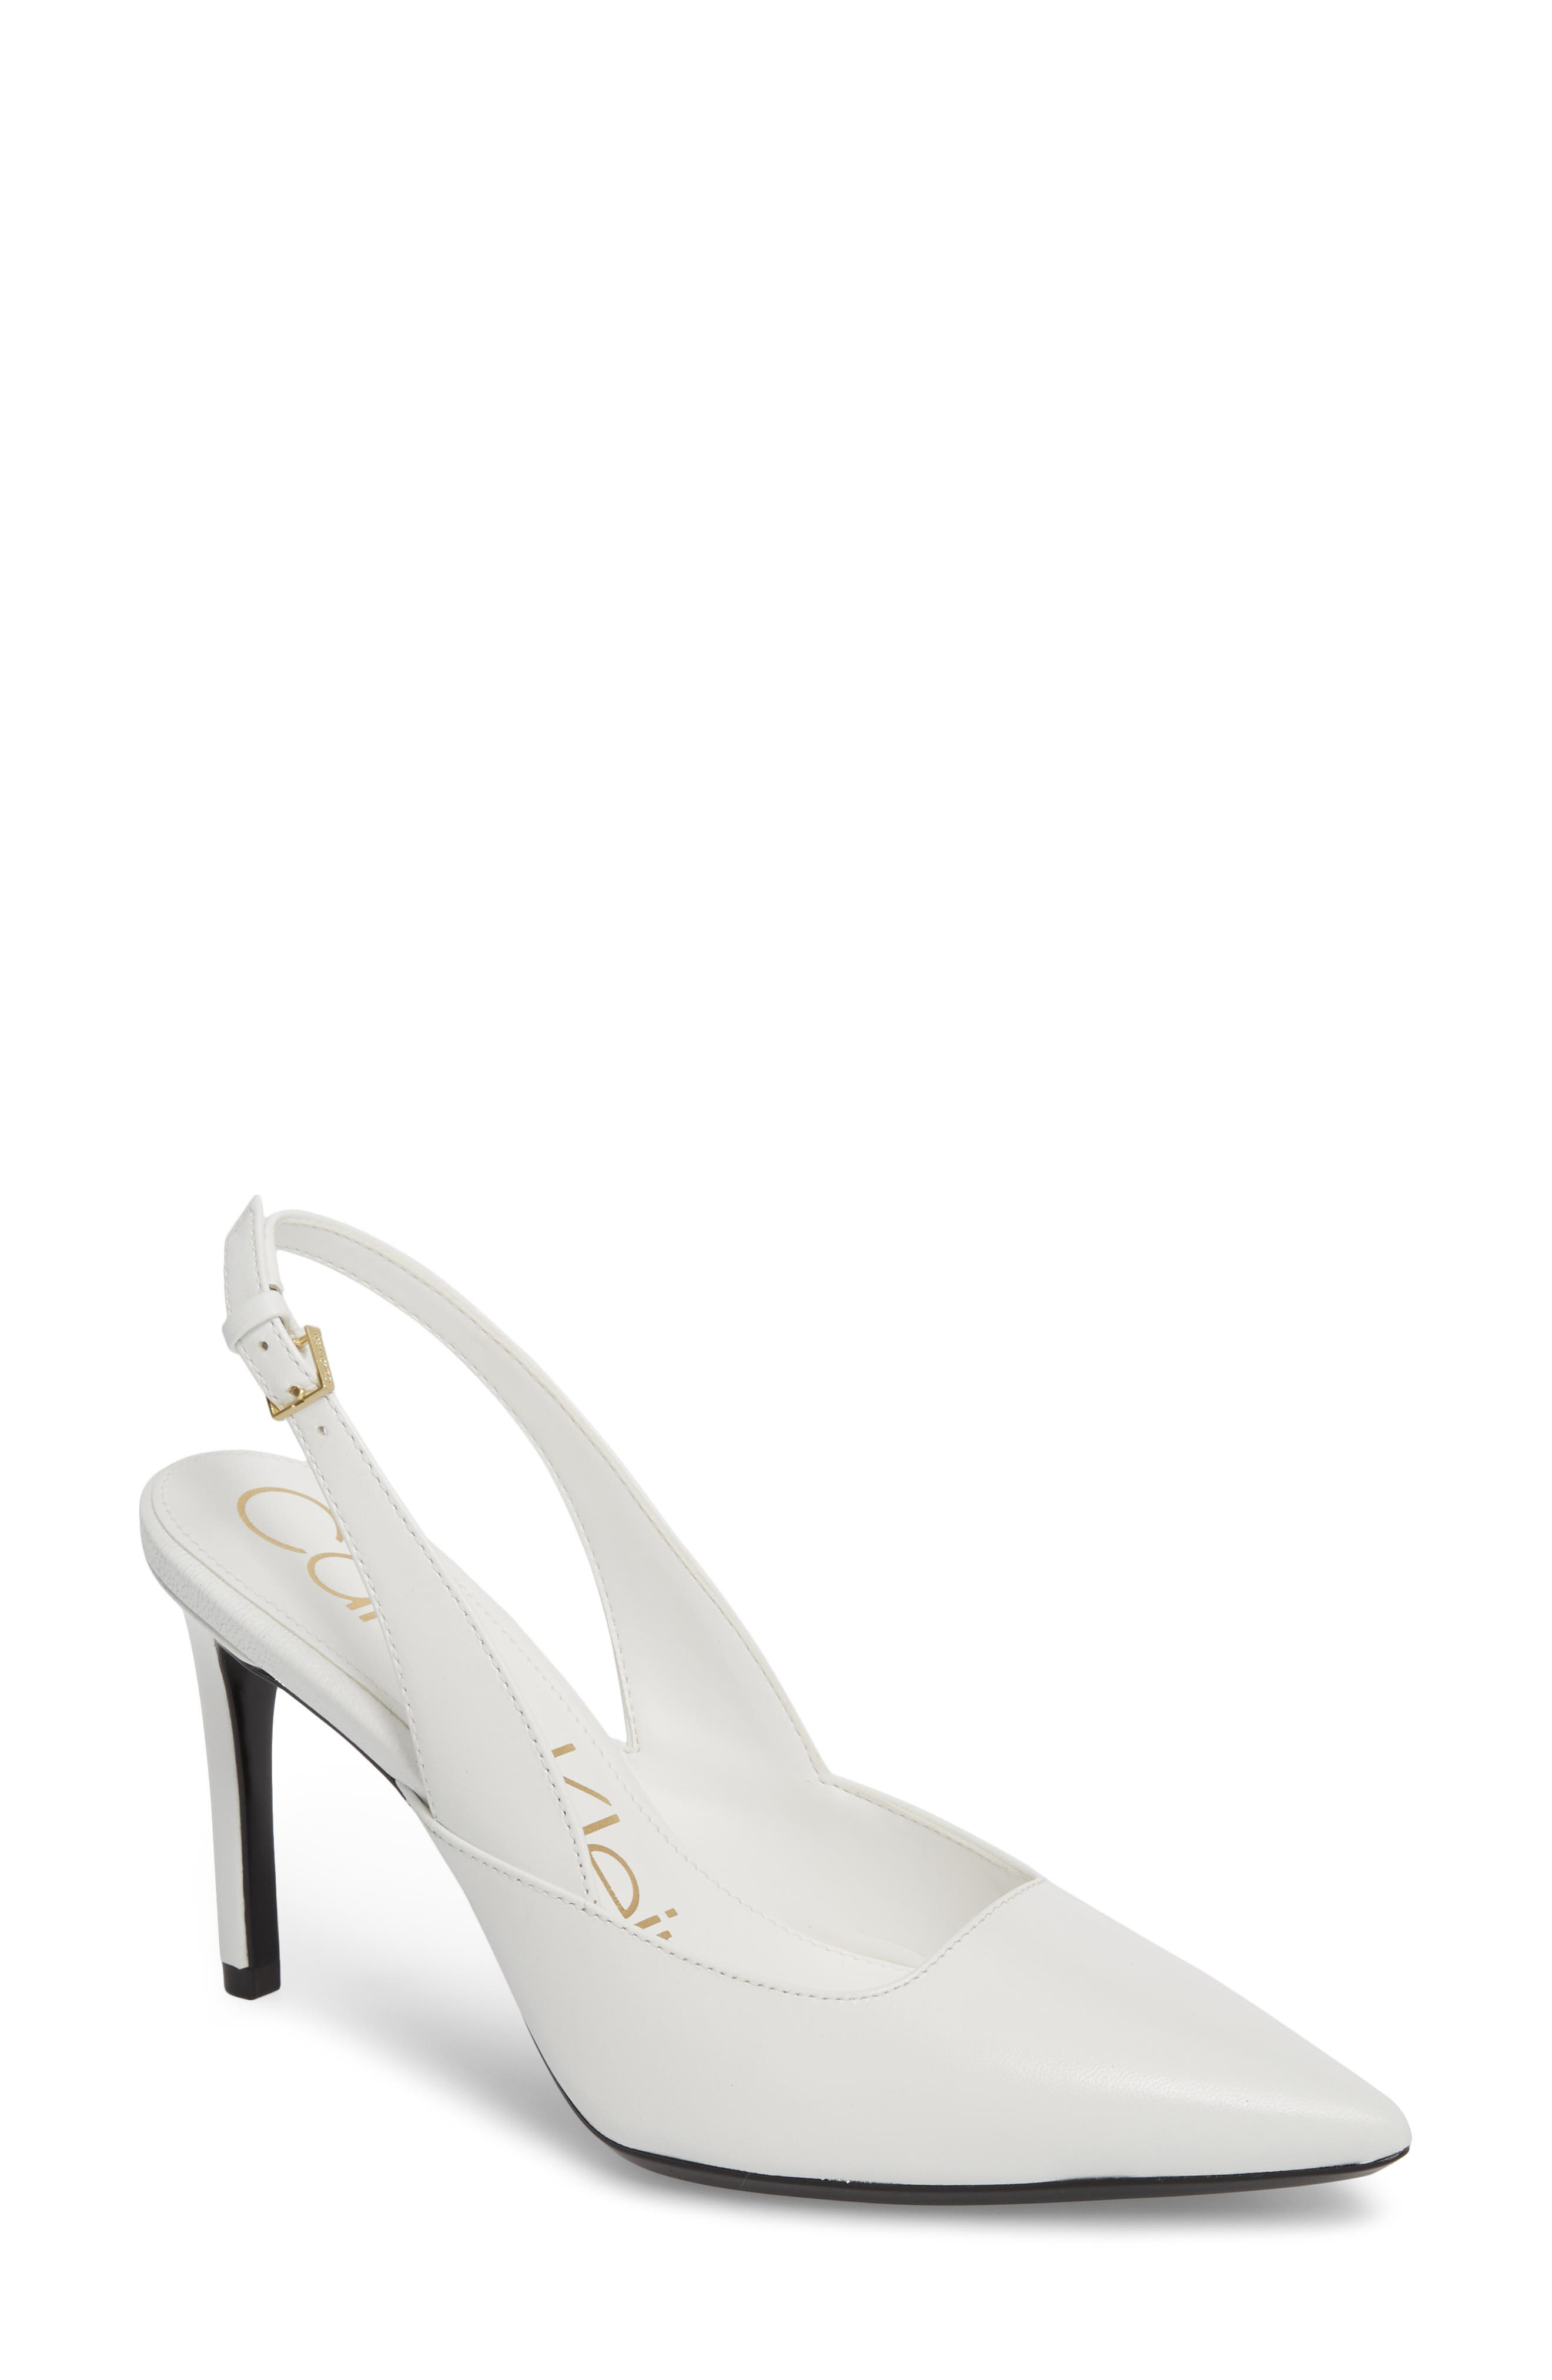 Rielle Slingback Pump,                             Main thumbnail 1, color,                             Platinum White Leather